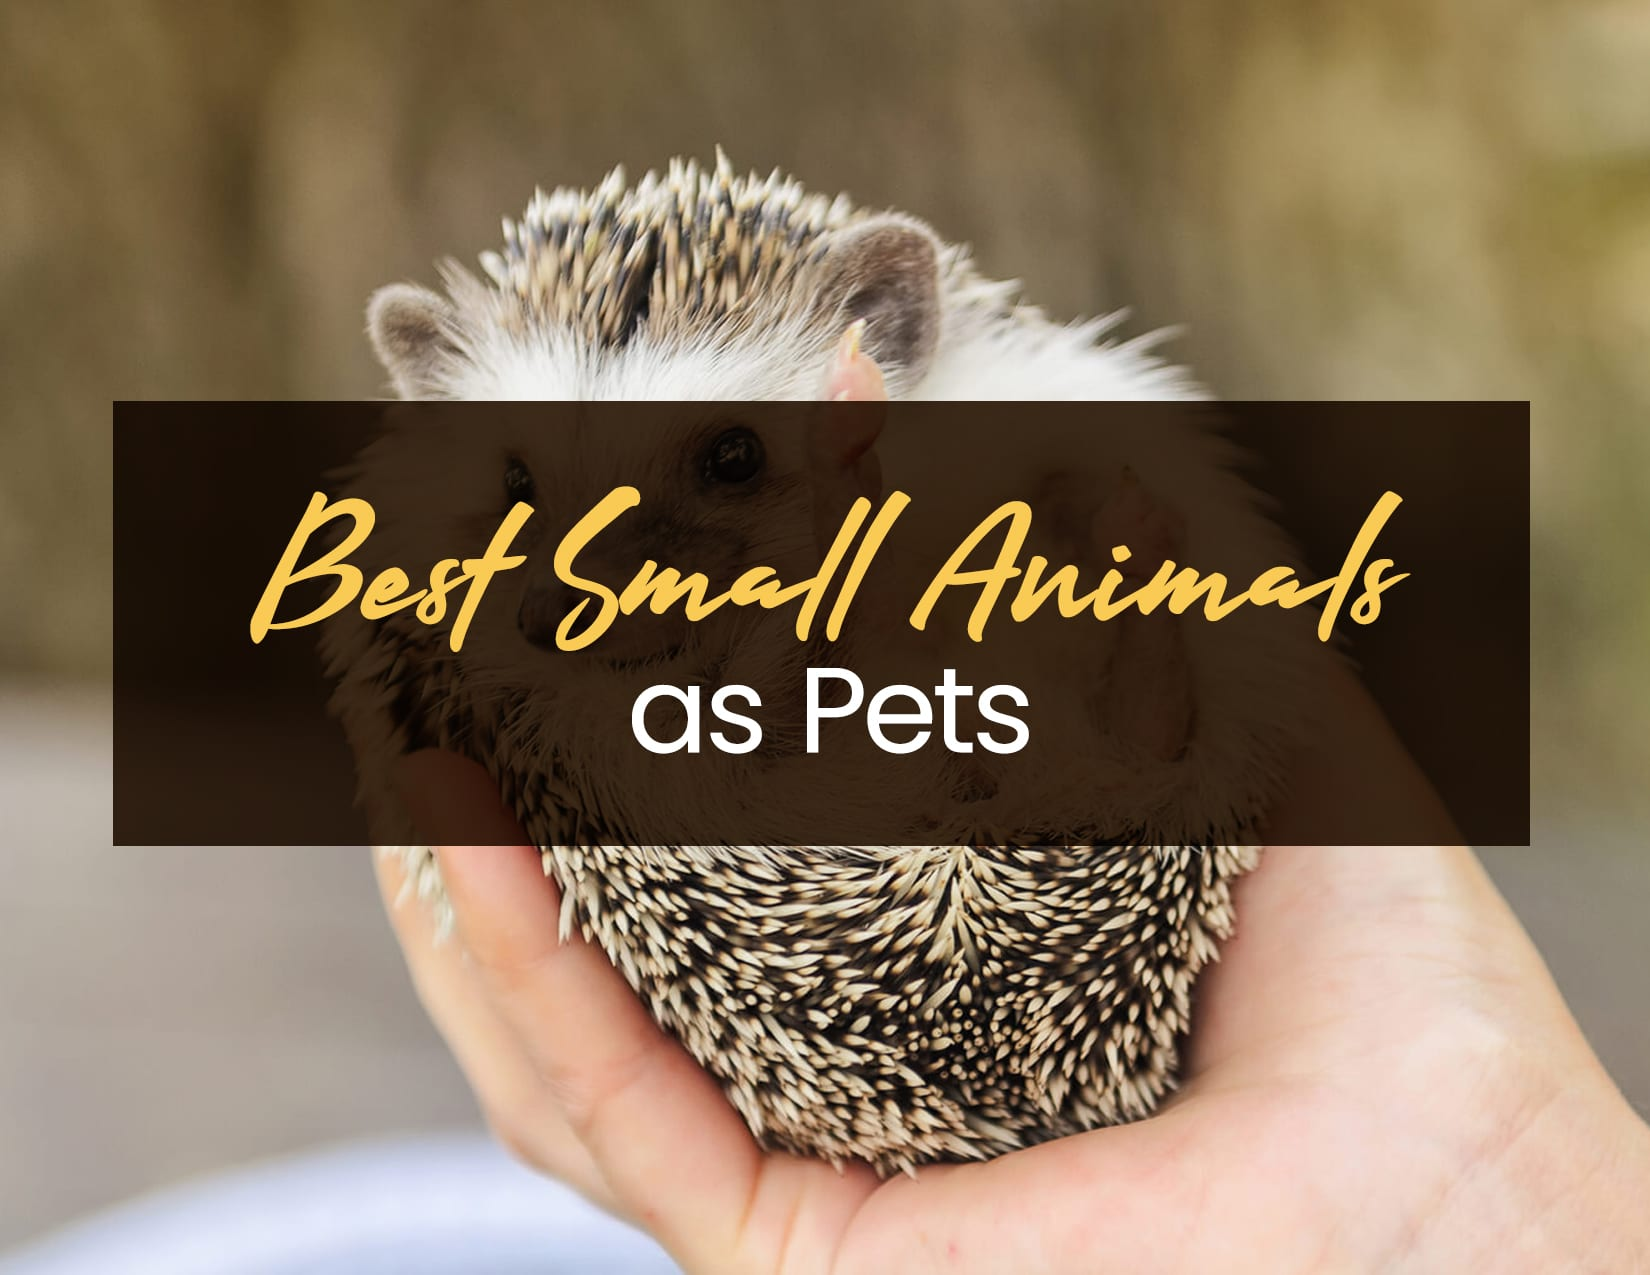 Best Small Animals as Pets